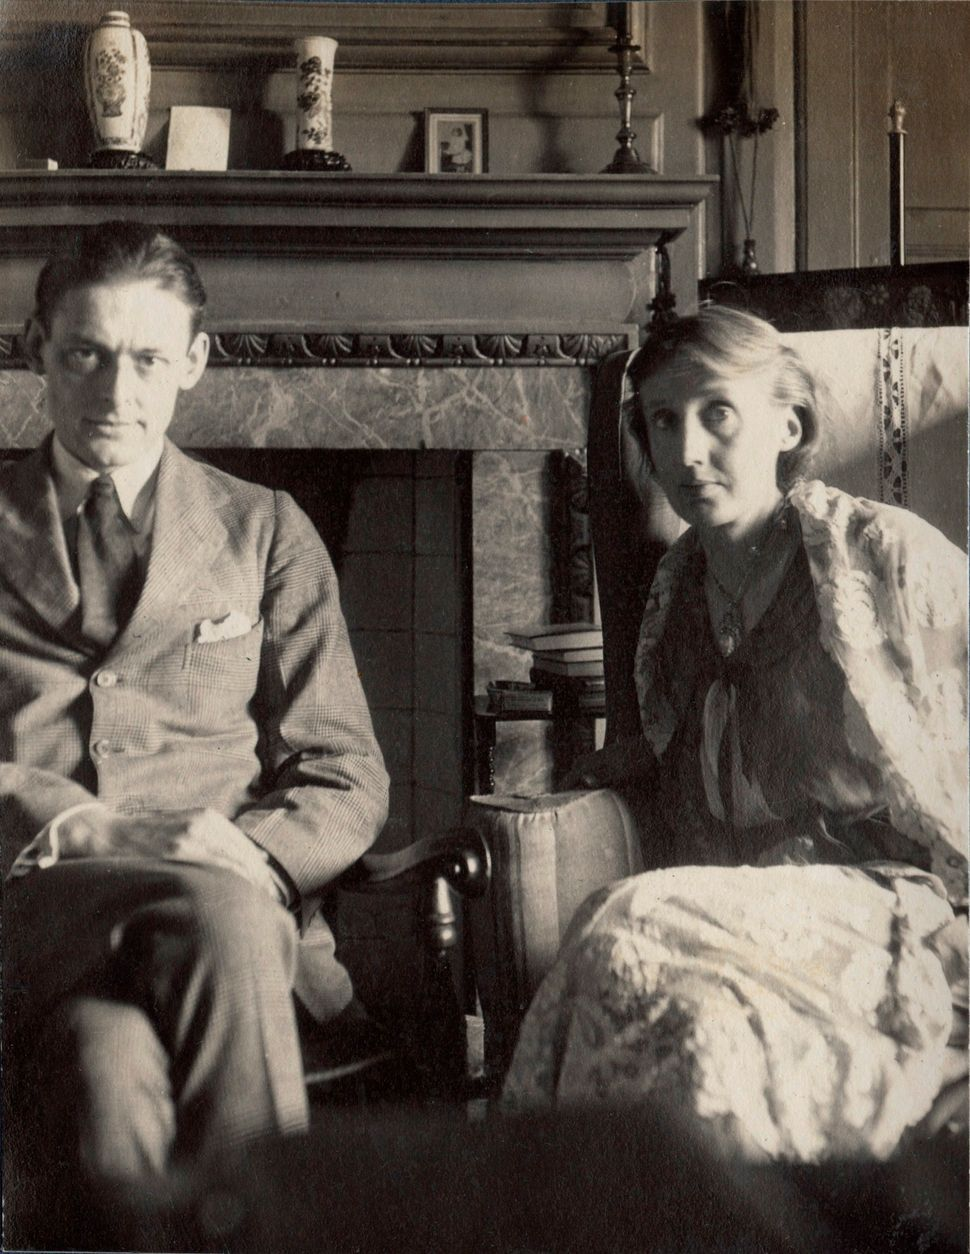 T.S. Eliot and Virginia Woolf by Lady Ottoline Morrell, June 1924 © National Portrait Gallery, London